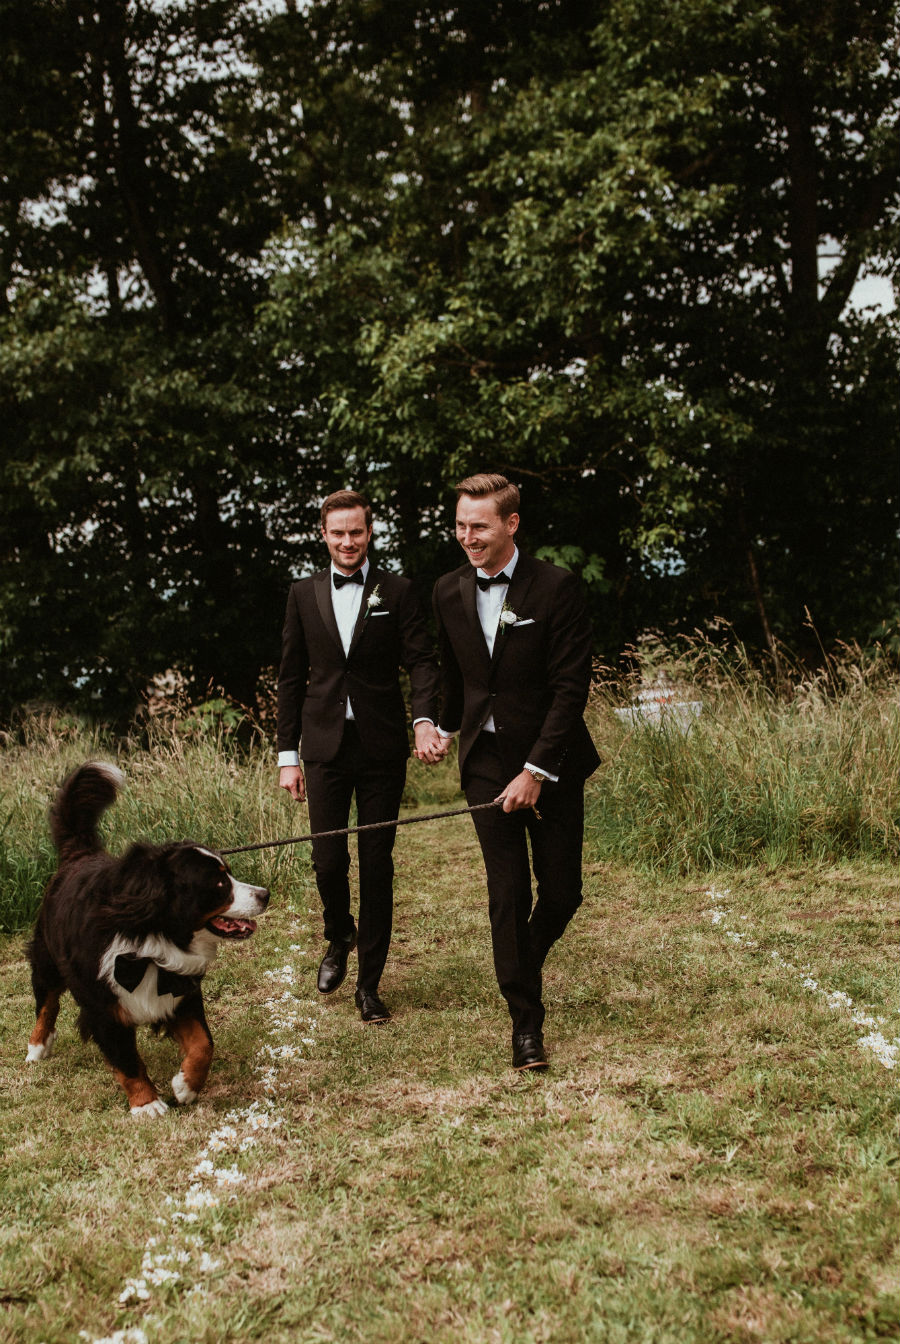 Two male grooms on their wedding day